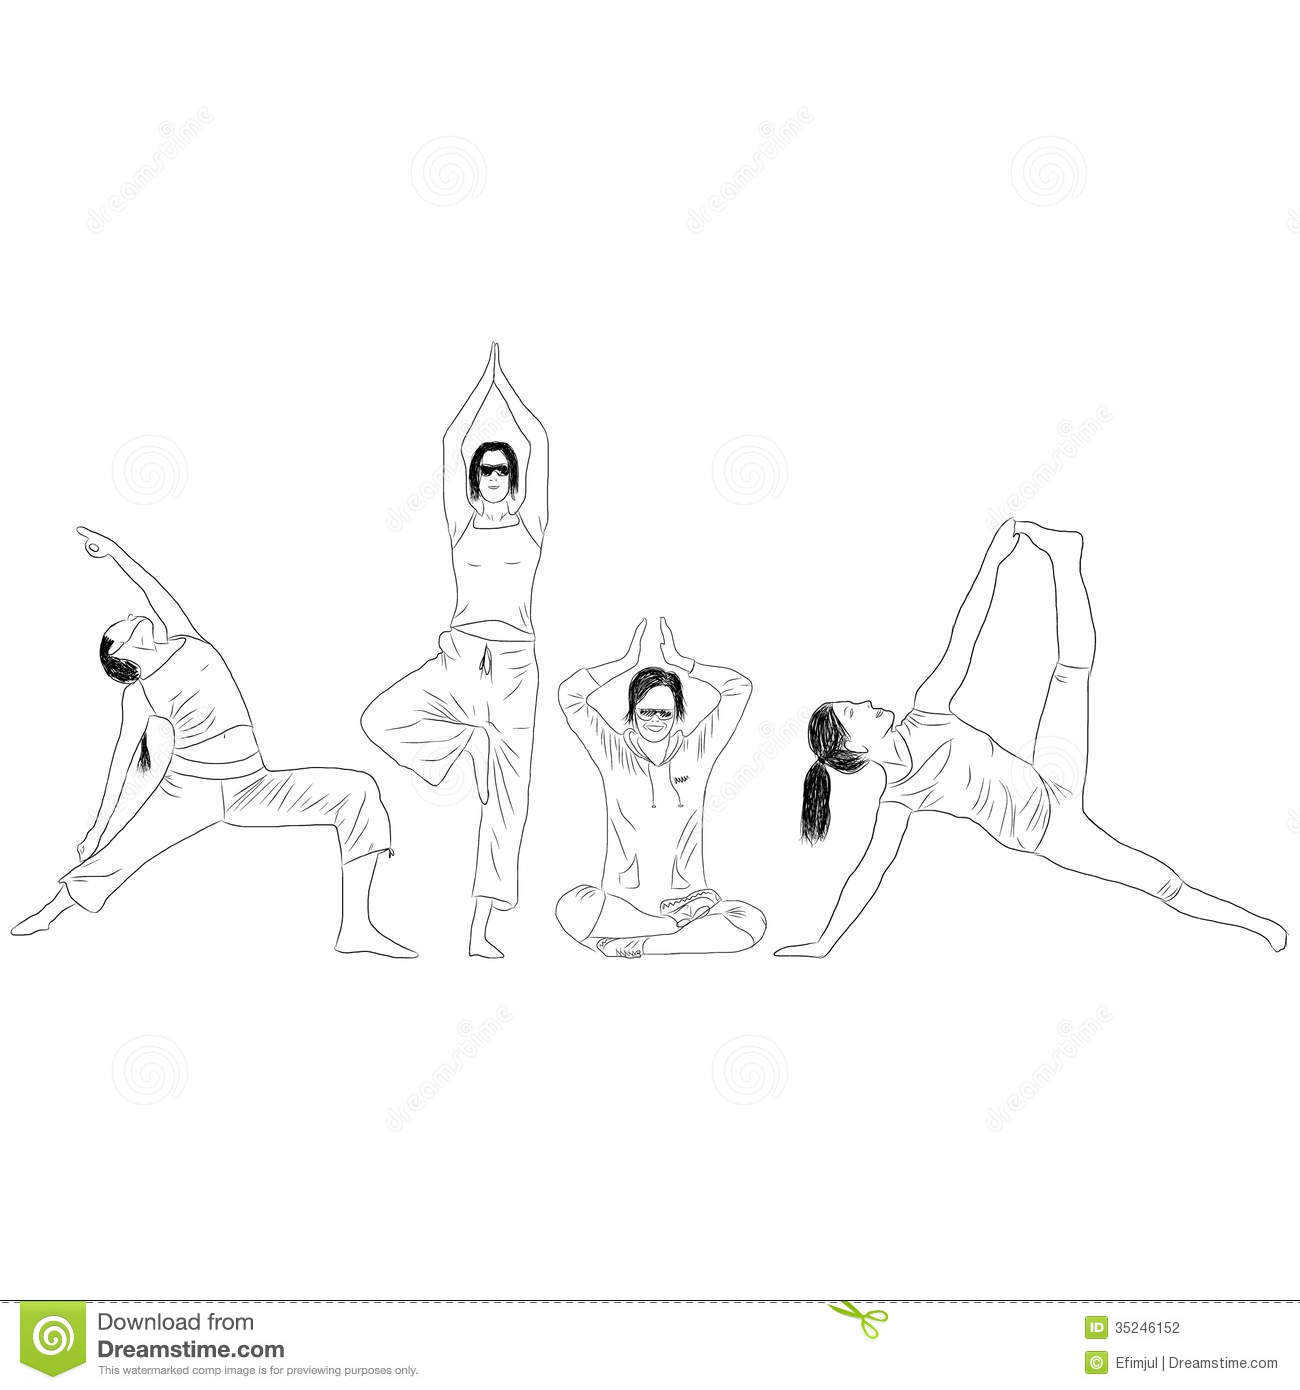 A set of exercises of yoga stock vector. Illustration of